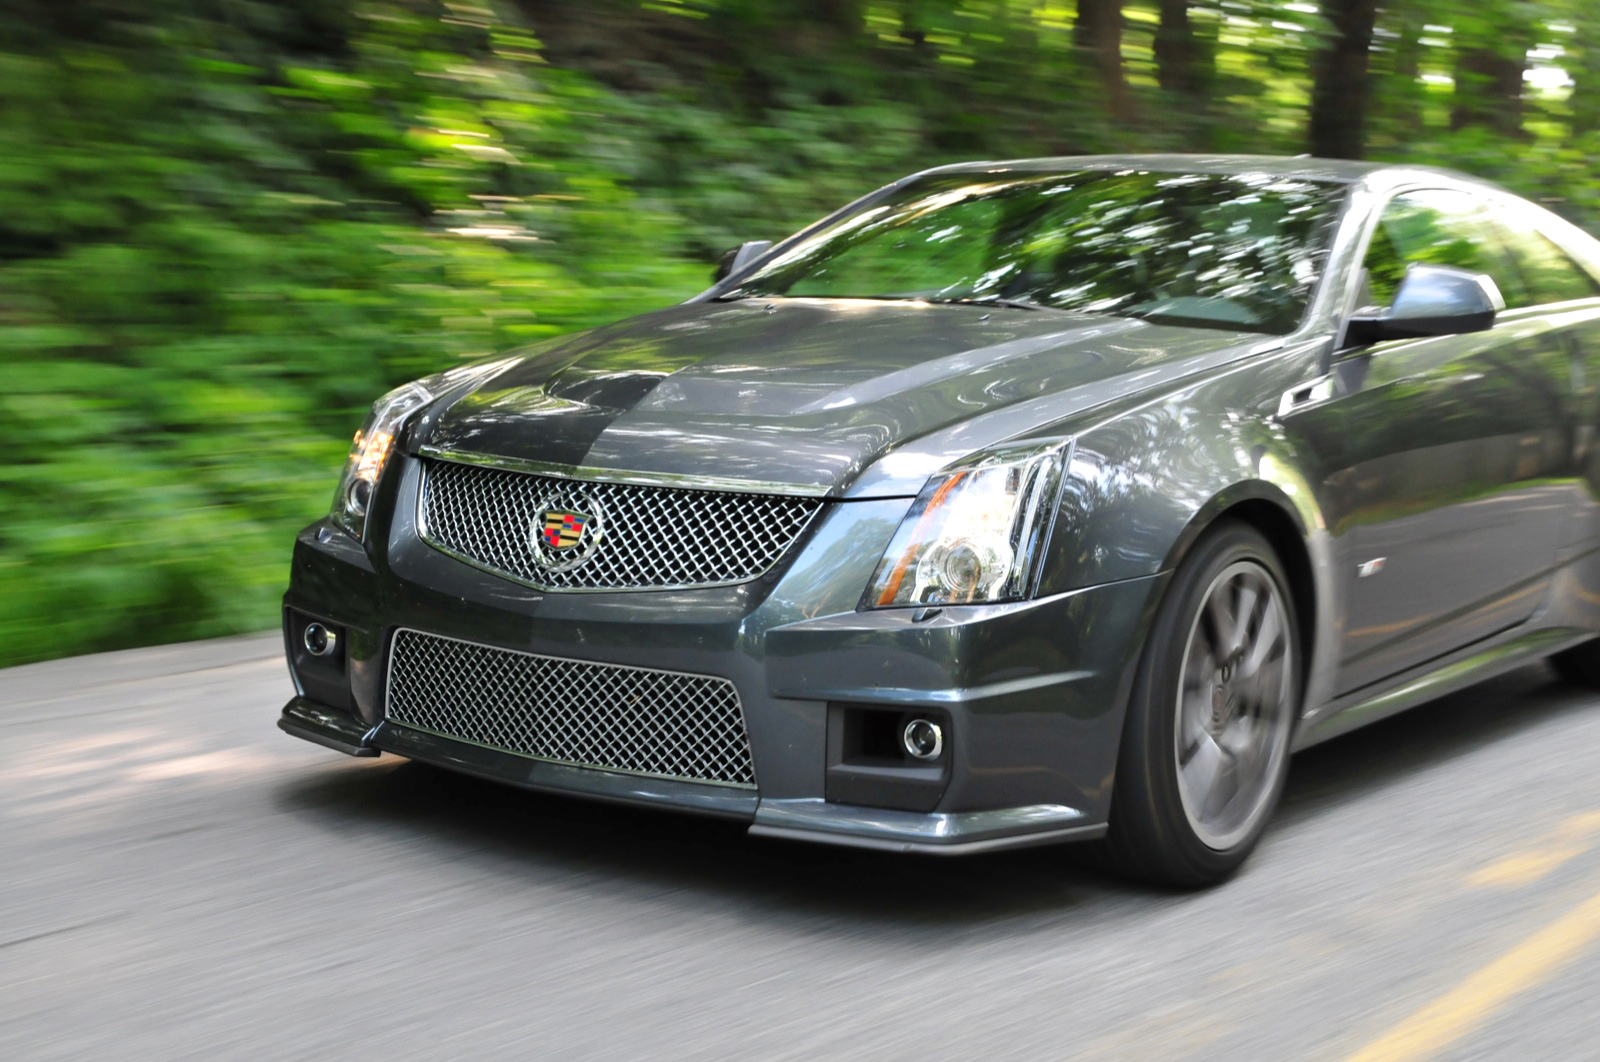 cadillac cts v8 photos and comments. Black Bedroom Furniture Sets. Home Design Ideas